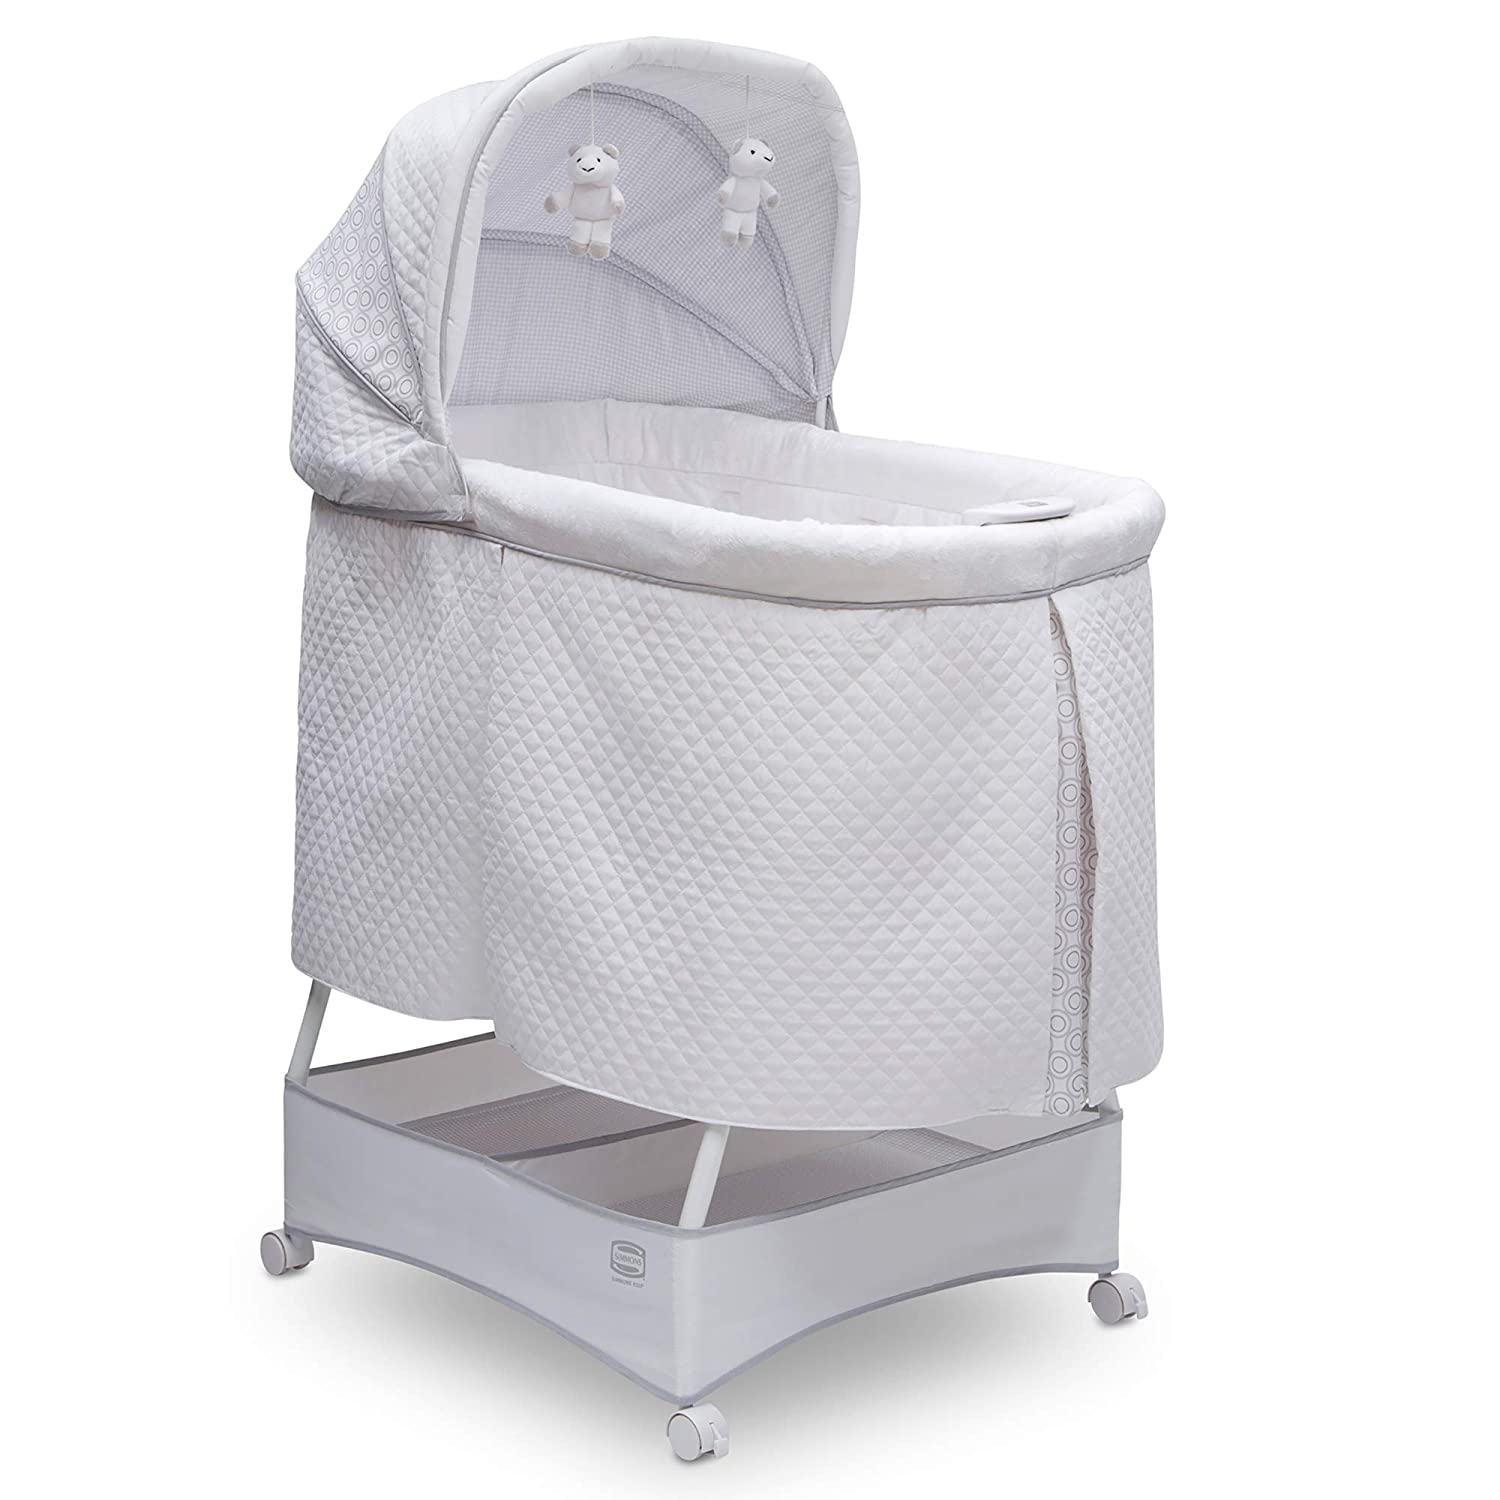 Simmons Kids Silent Auto Gliding Deluxe Bassinet Inner Circle